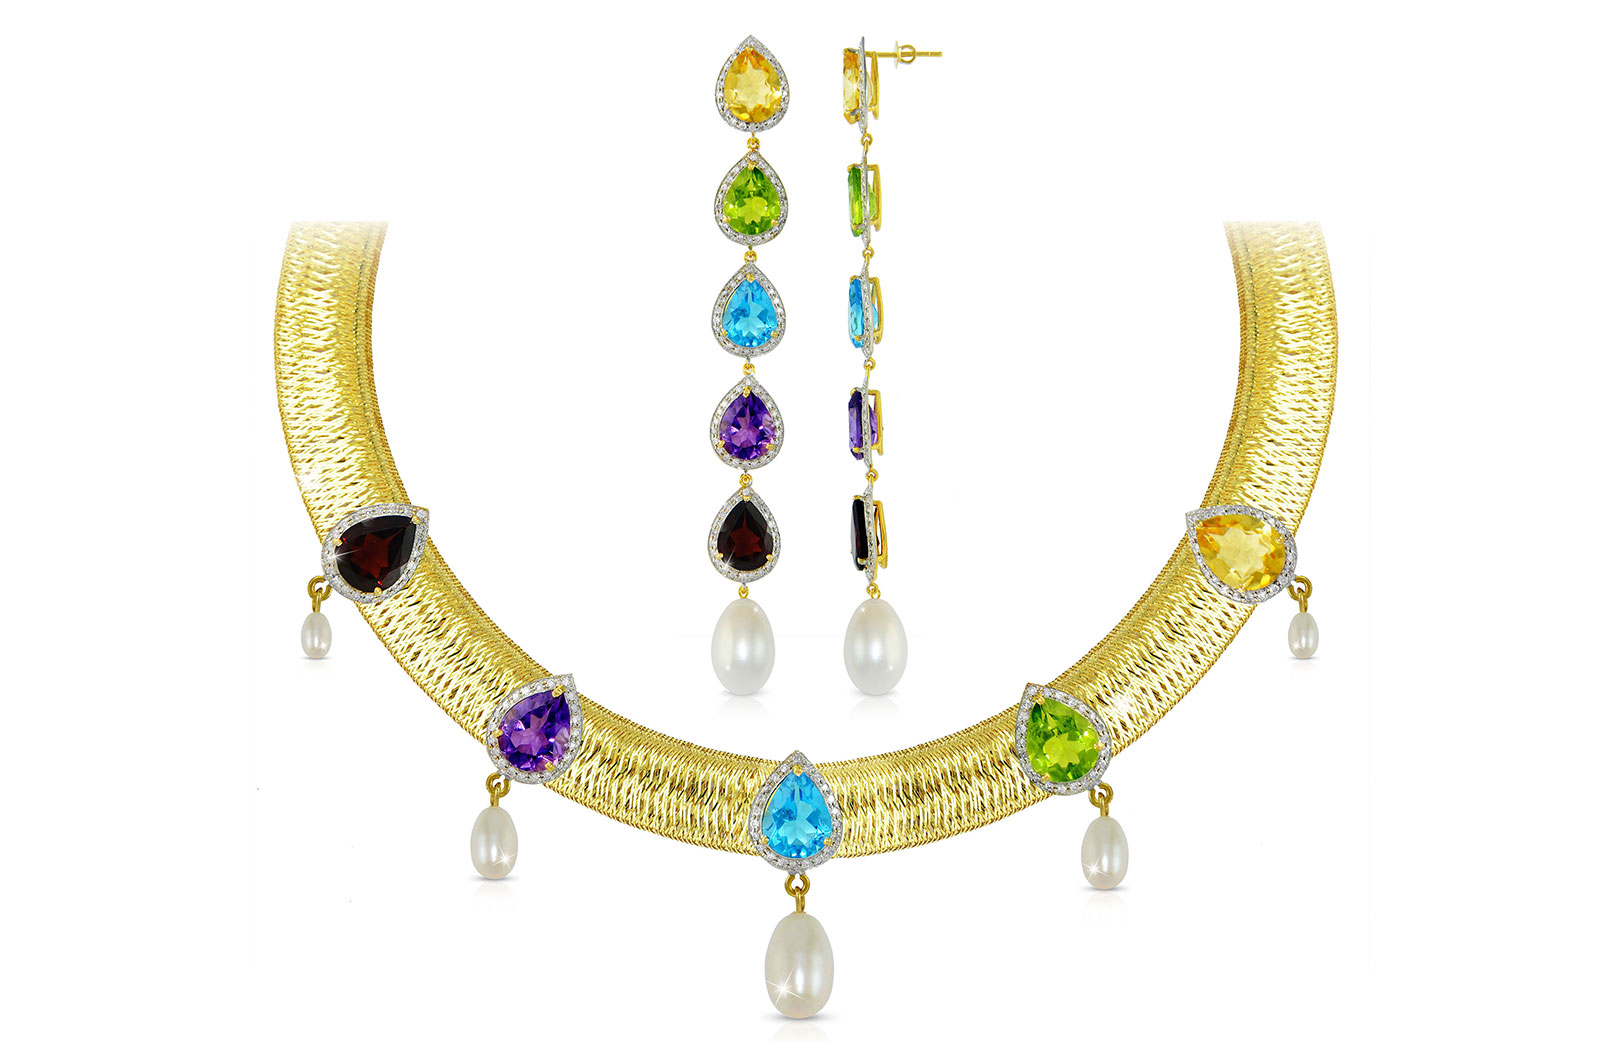 Vera Perla 18K  Gold 1.80Ct Genuine Diamonds and Multi-Gemstones with 7mm-13mm Pearls Jewelry Set, 2 pcs